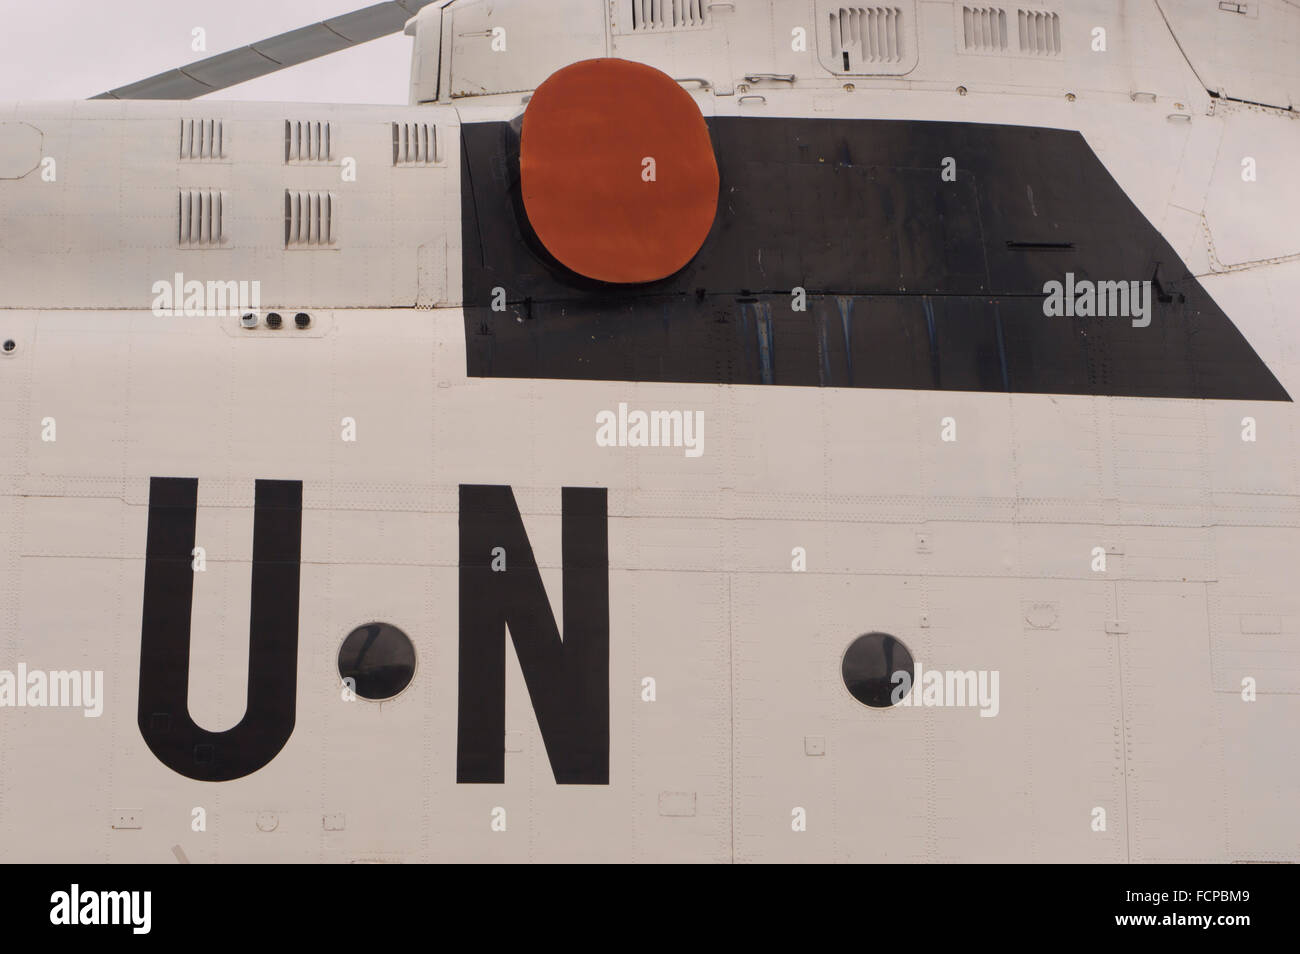 UN Symbol on Helicopter - Stock Image